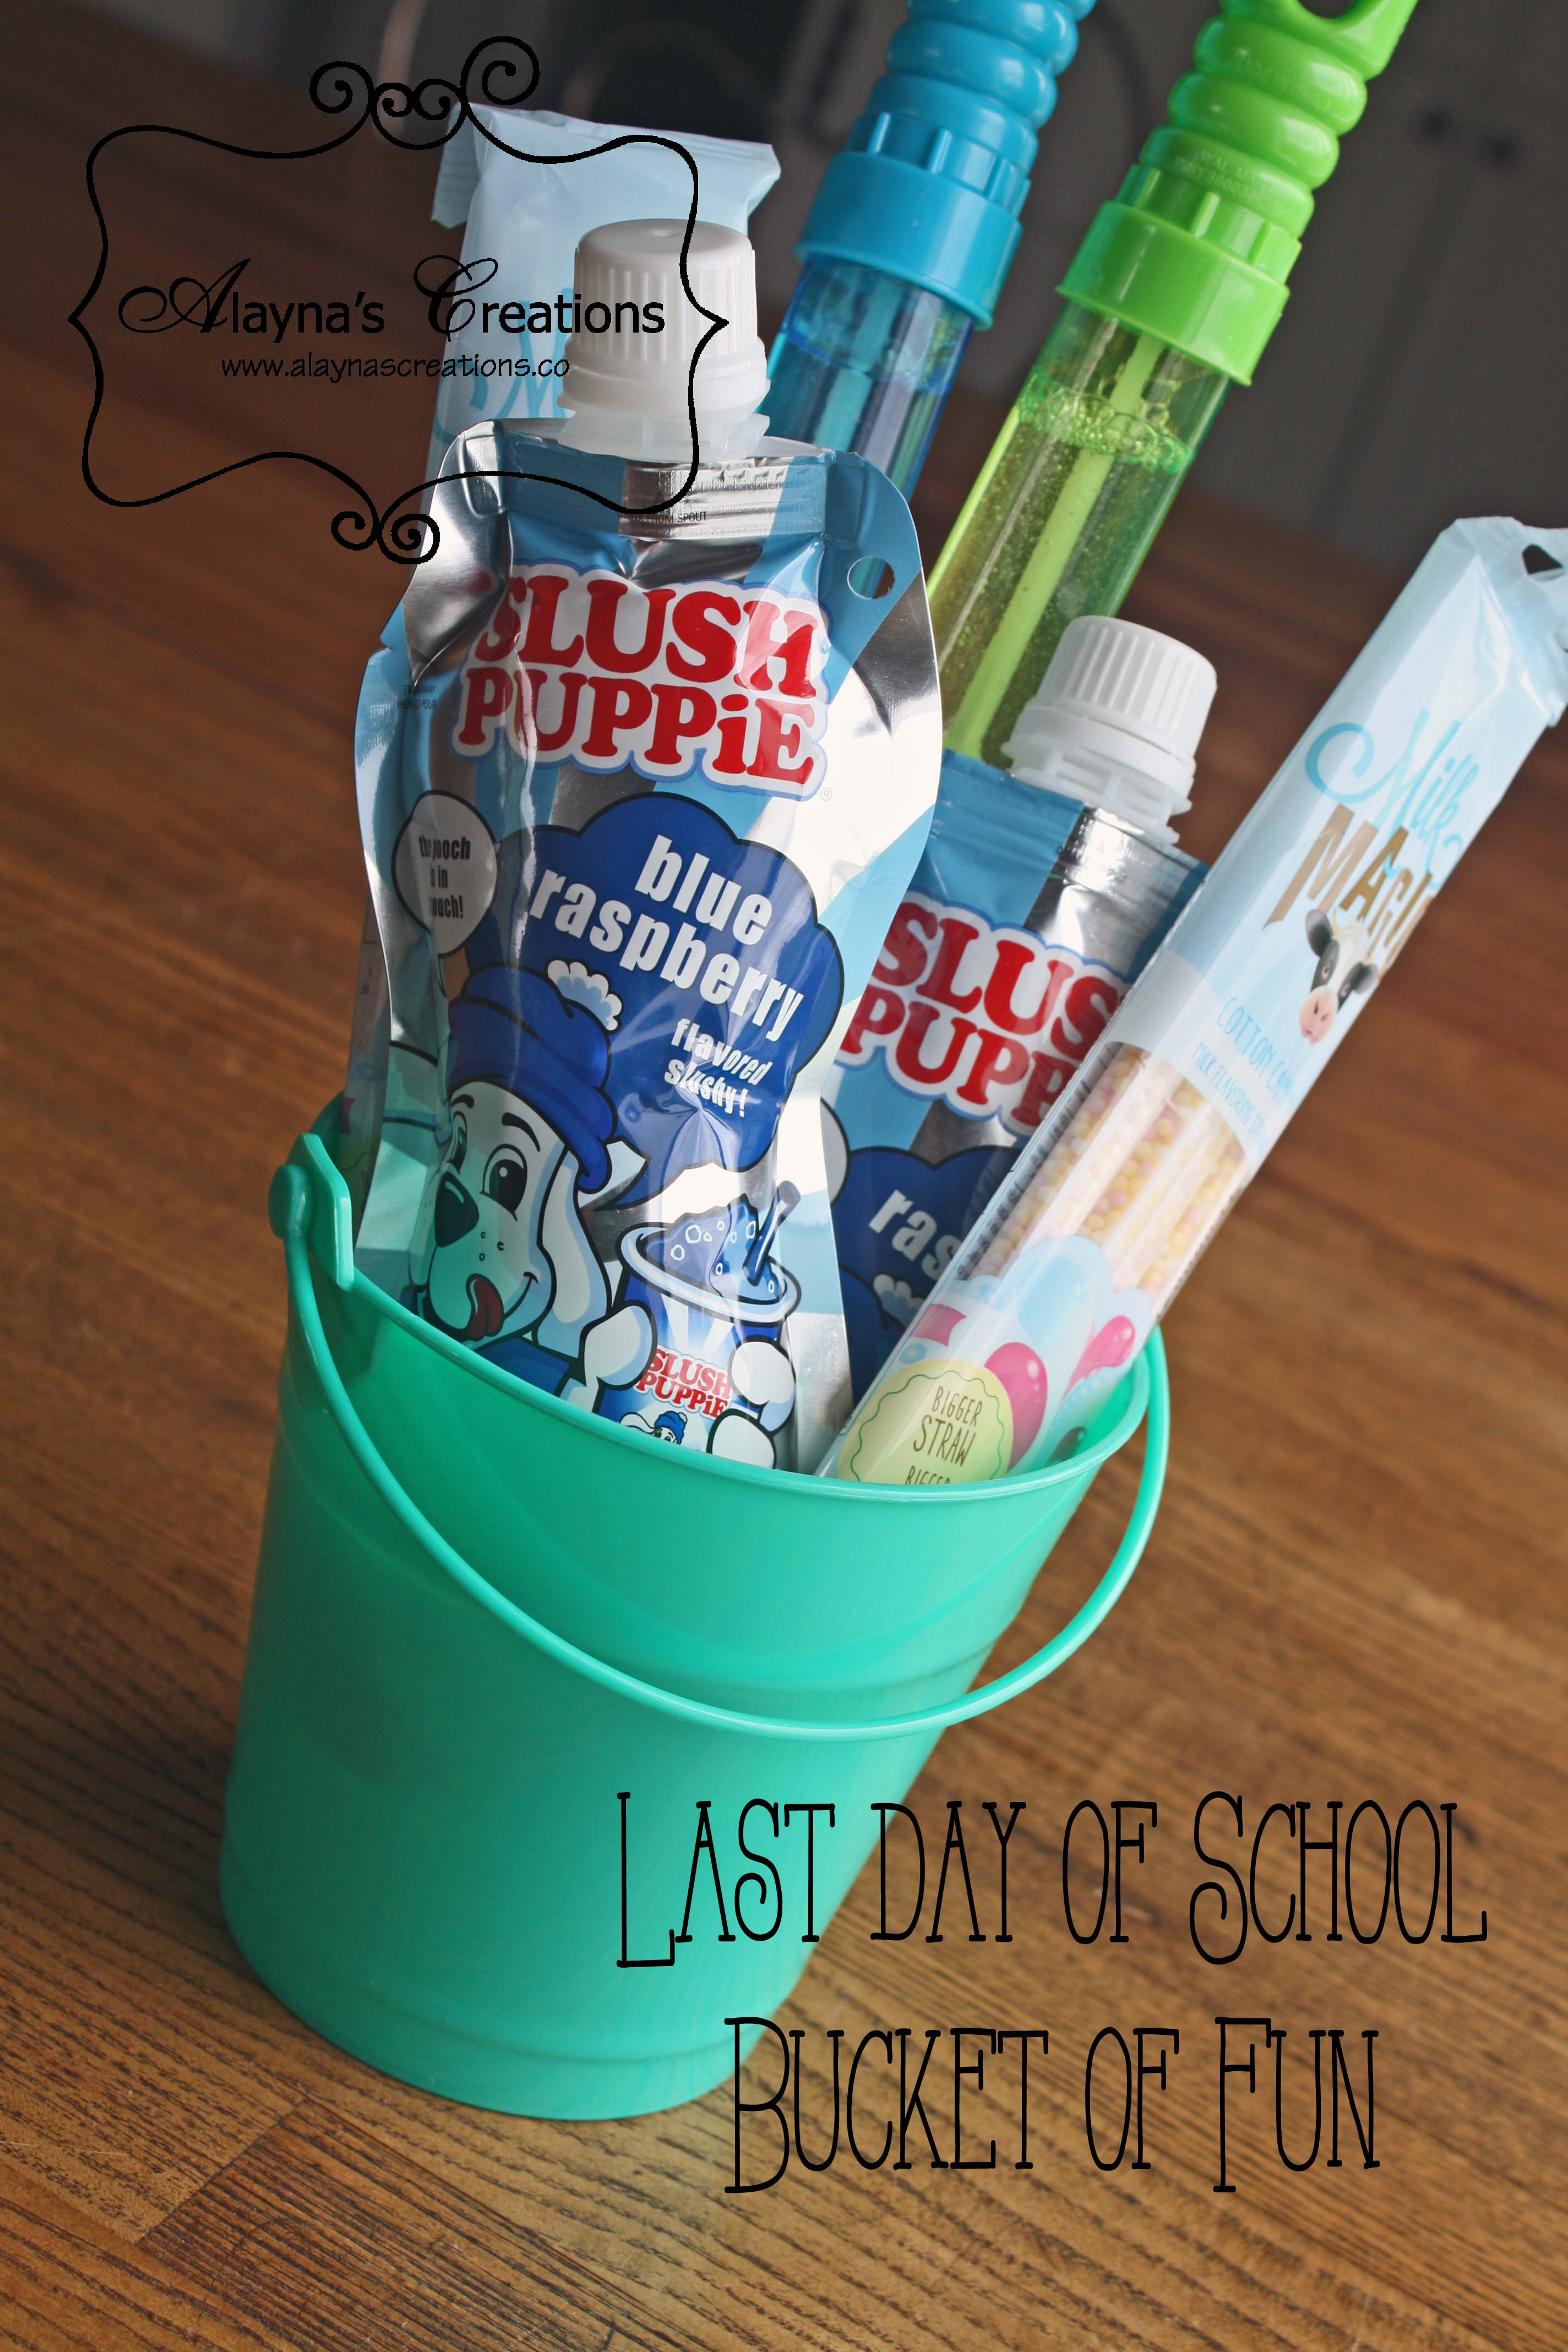 Last Day of School Bucket of Fun for Summer gift idea for the kids AlaynasCreations